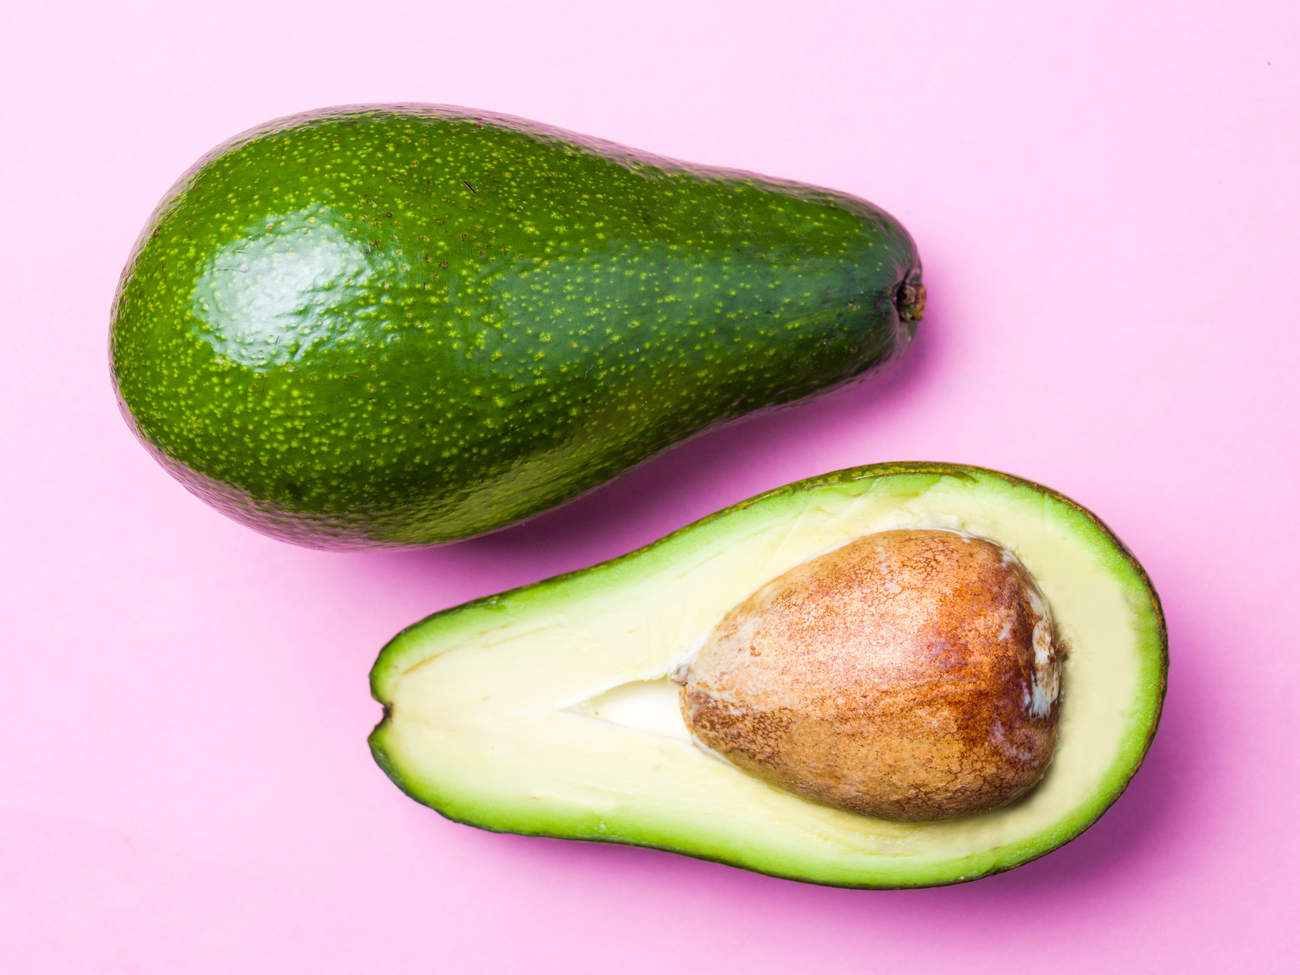 brown-avocados-pink-background-recall-listeria